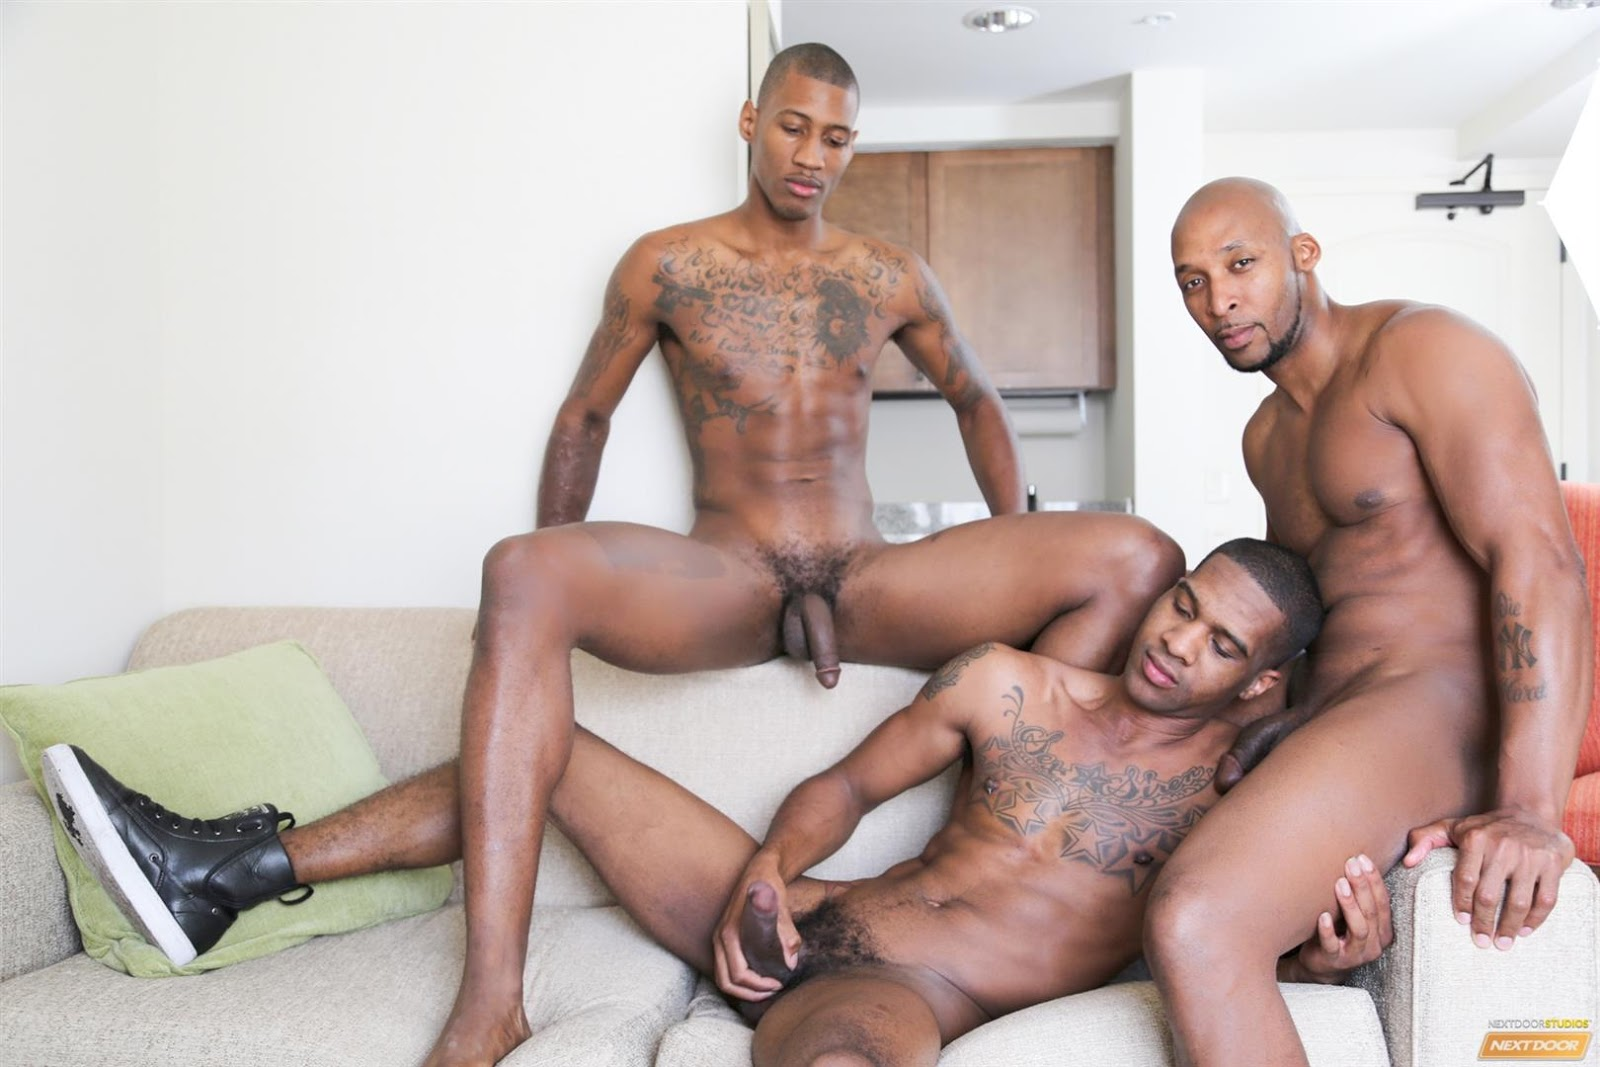 Love that group nude or naked join